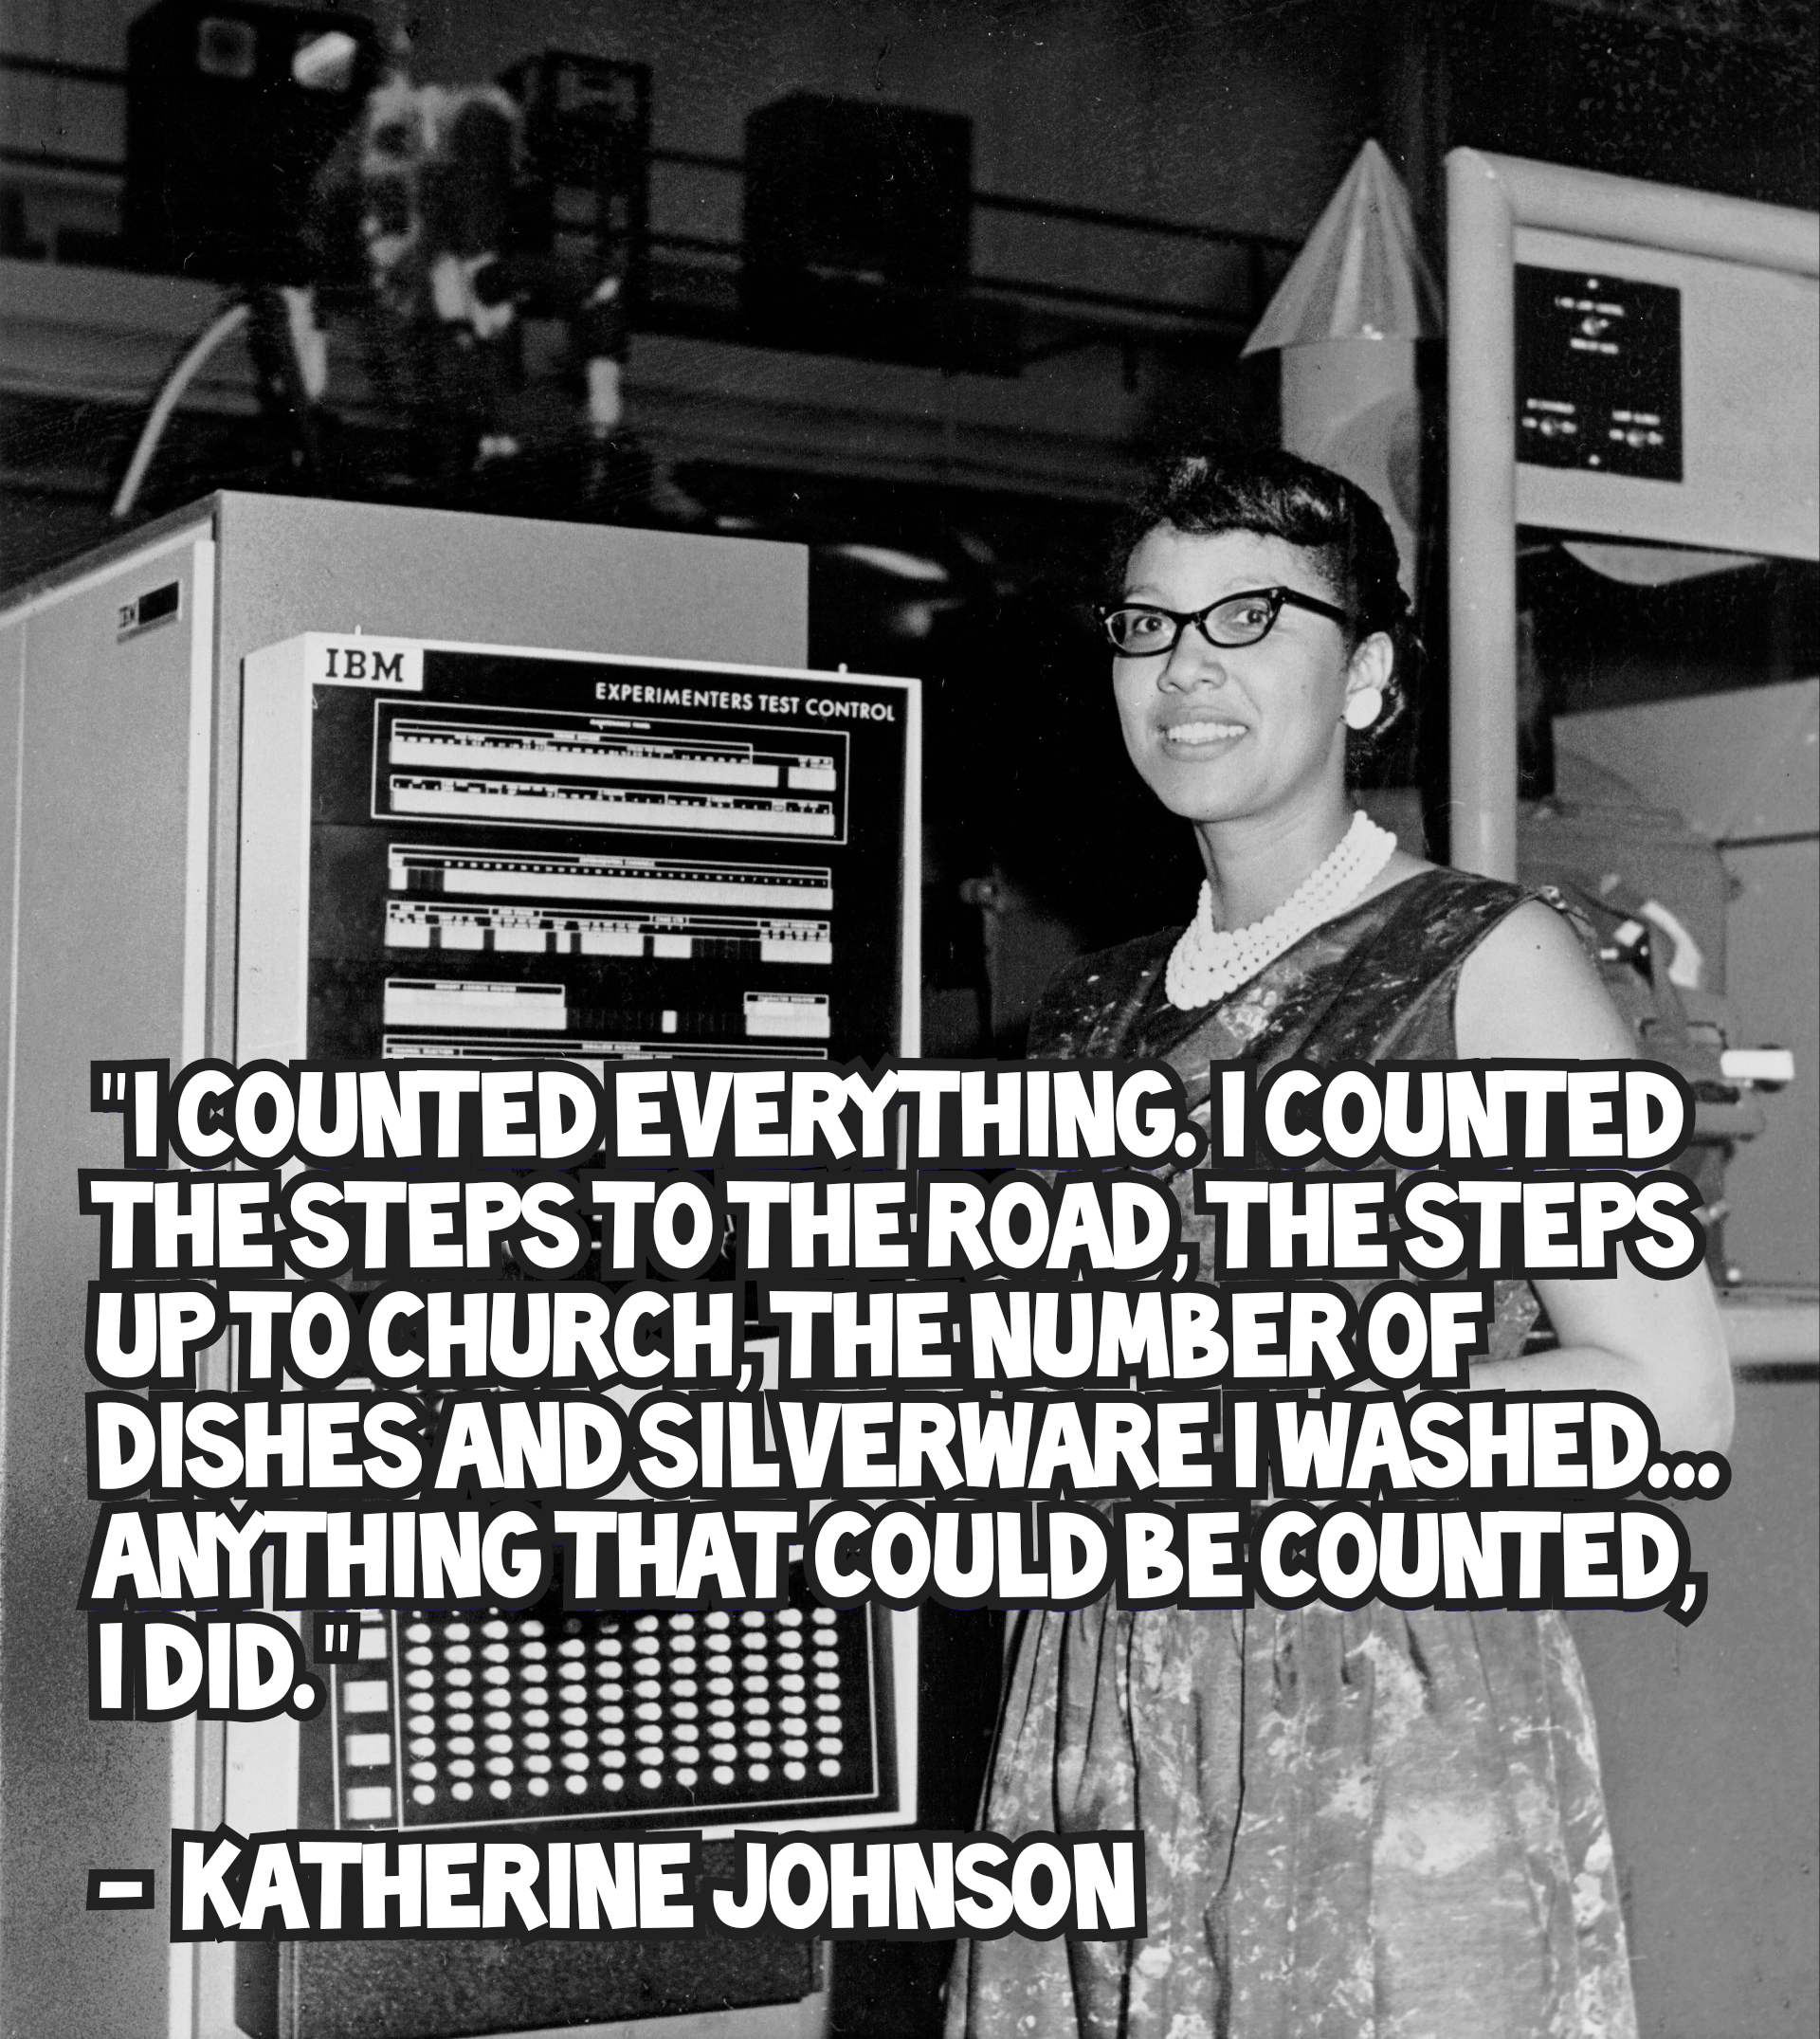 """I counted everything. I counted the steps to the road, the steps up to church, the number of dishes and silverware I washed… anything that could be counted, I did."" – Katherine Johnson [Image]"